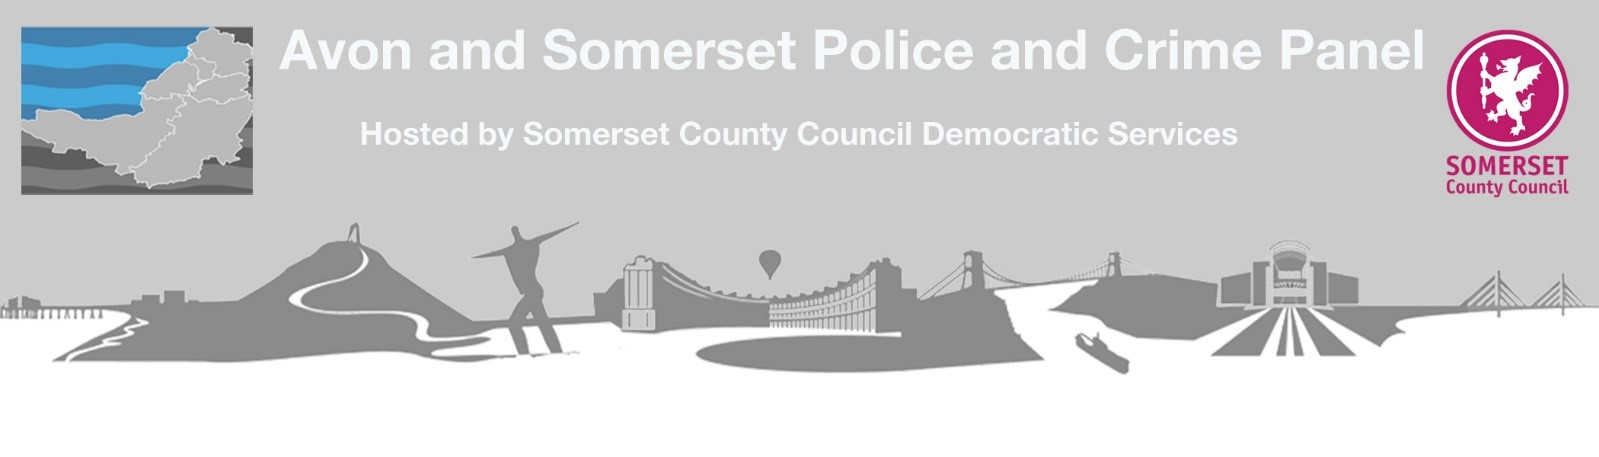 Avon and Somerset Police and Crime Panel